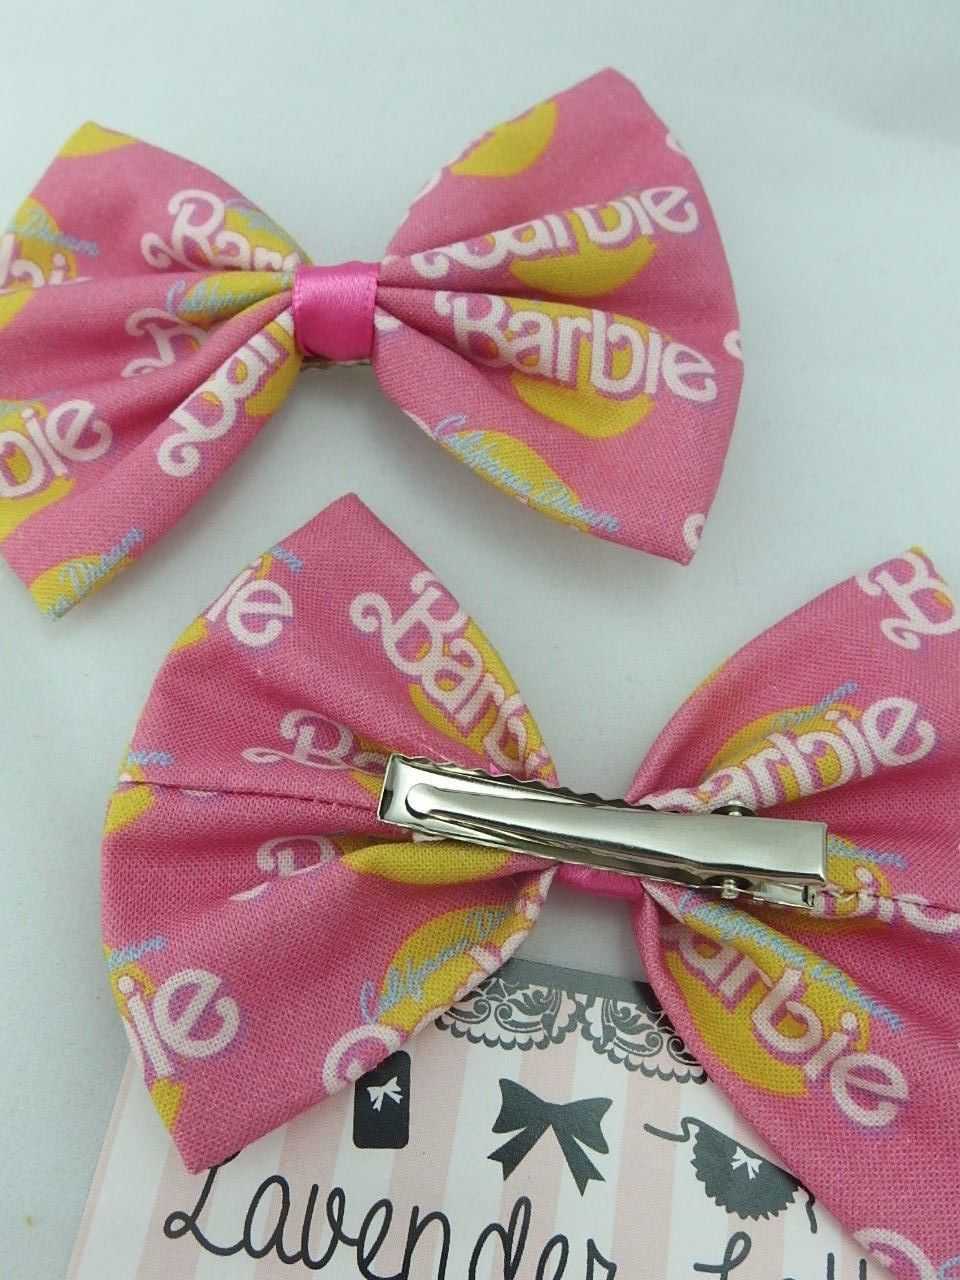 466084d0b12a5 California Dream Barbie Hot Pink Girly Fabric Hair Bow Girly Girl